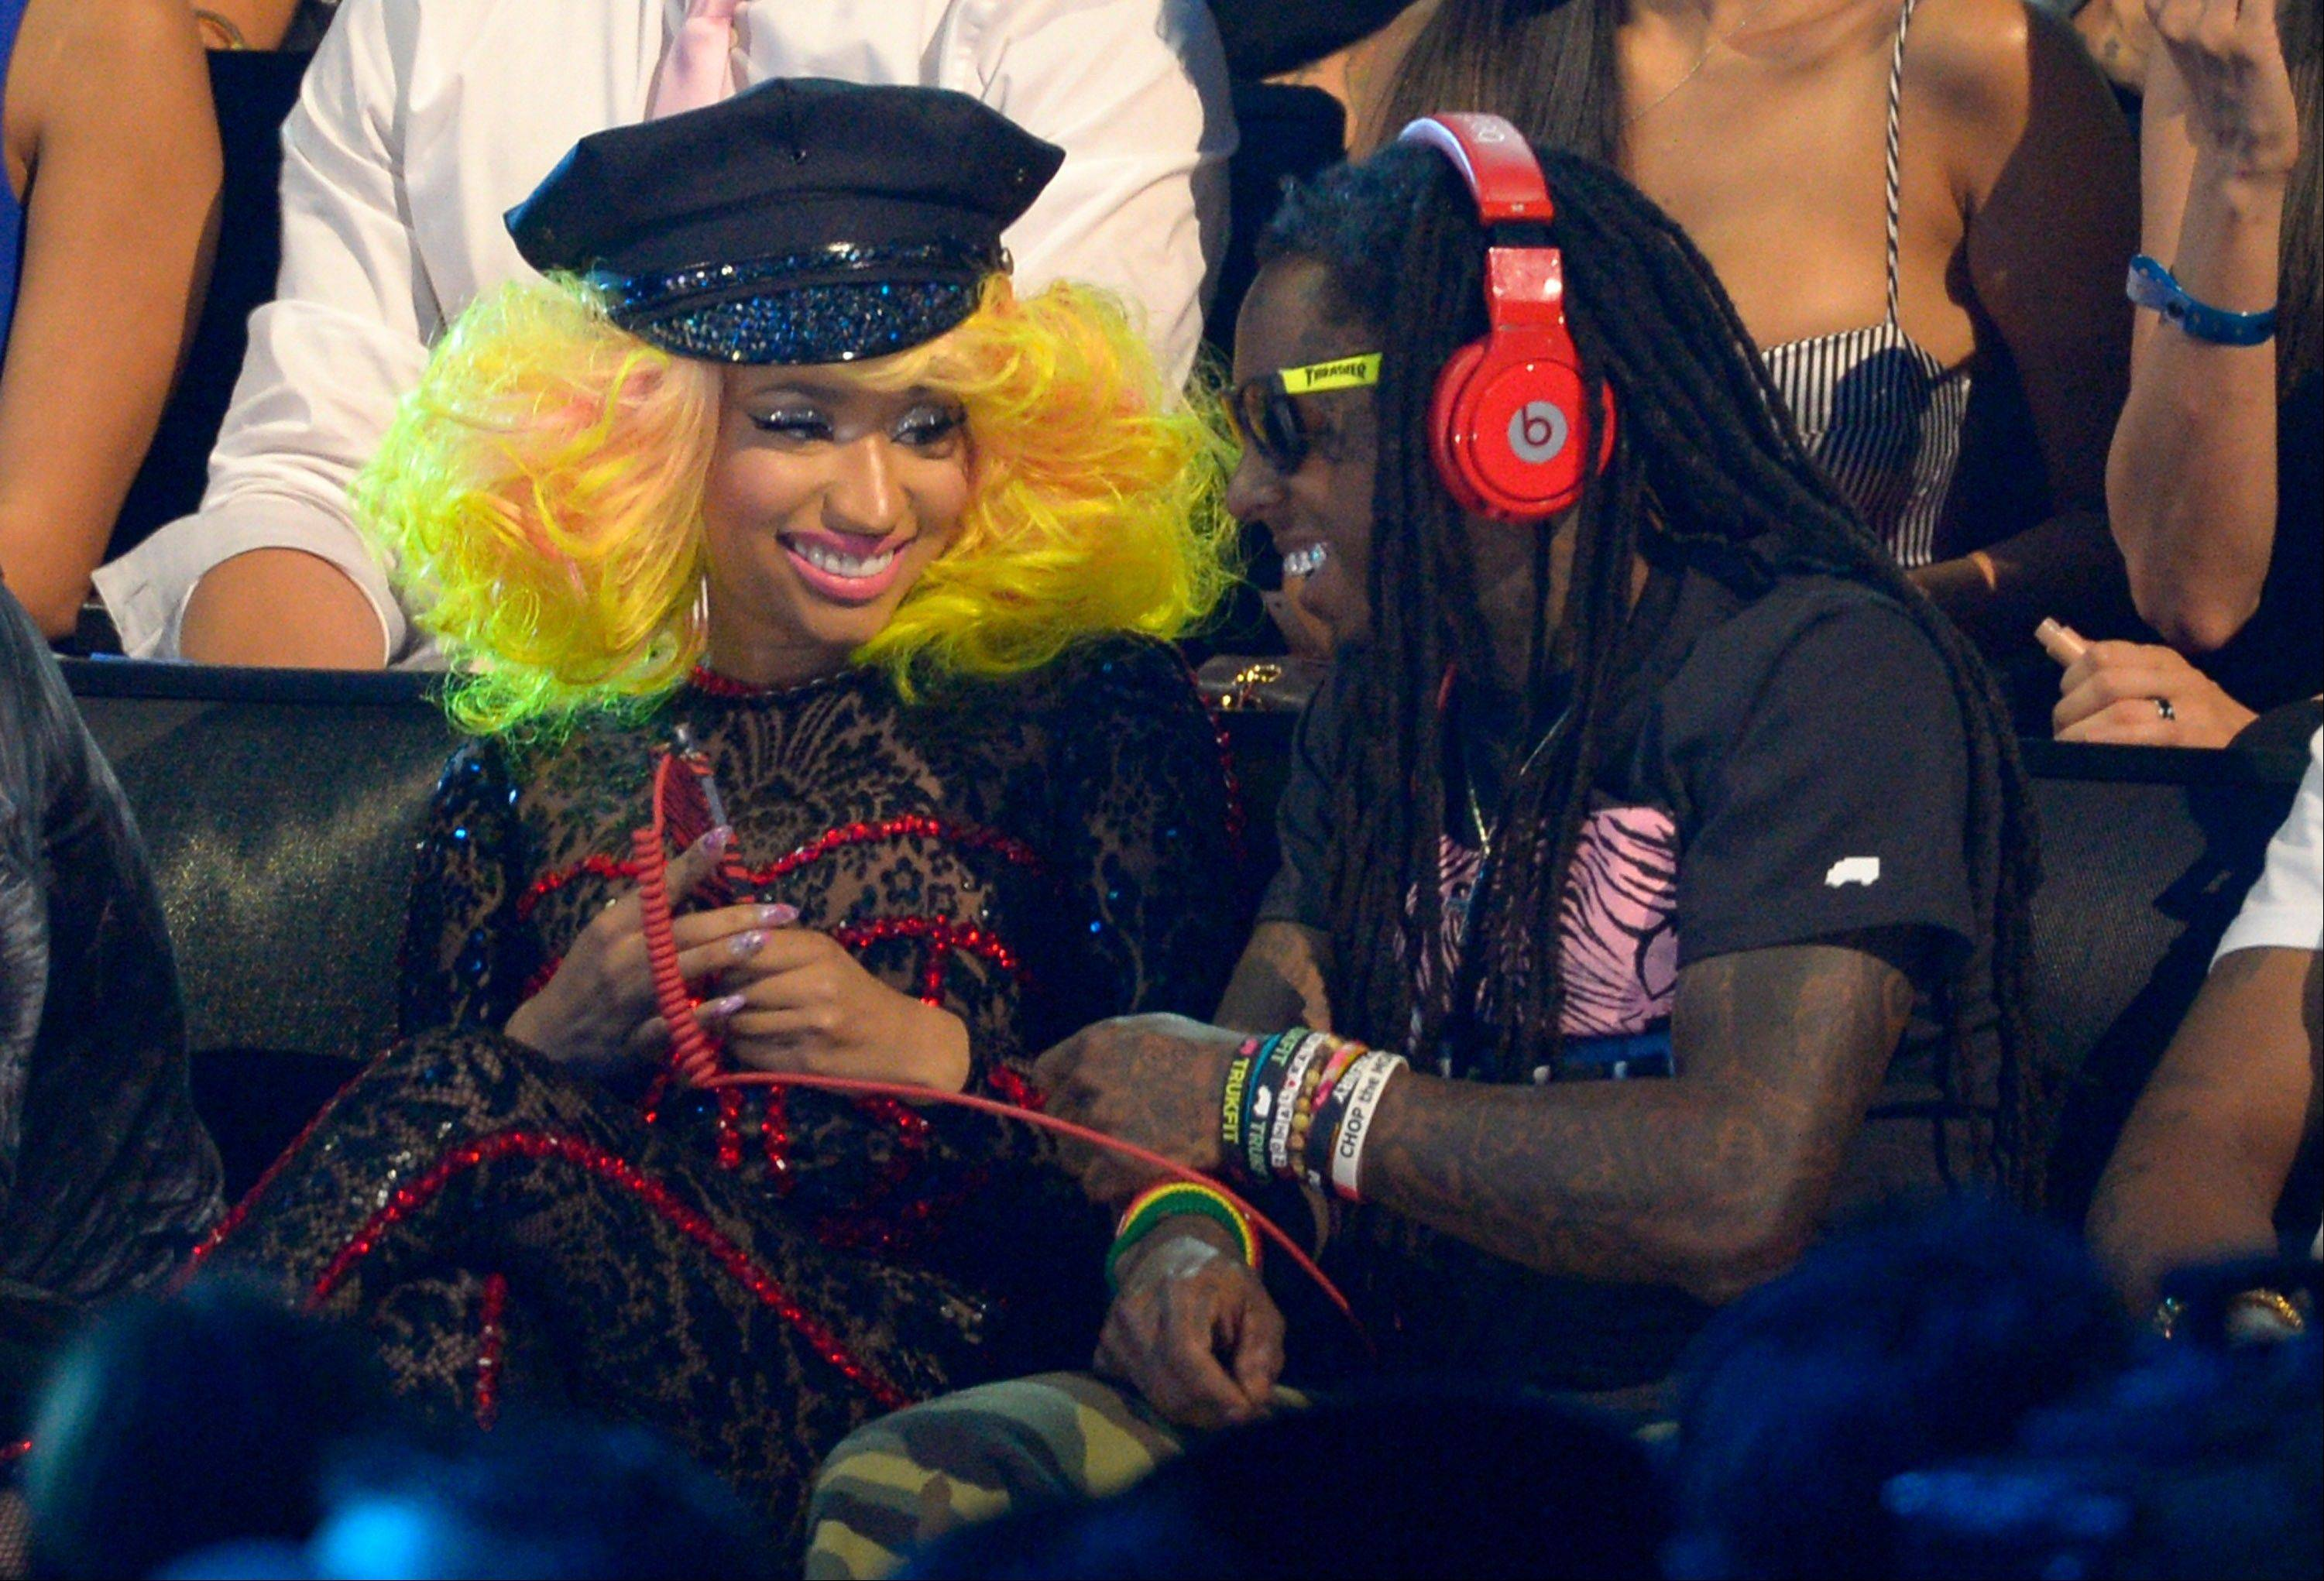 Nicki Minaj, left, and Lil Wayne sit in the audience in the audience at the MTV Video Music Awards on Thursday, Sept. 6, 2012, in Los Angeles.